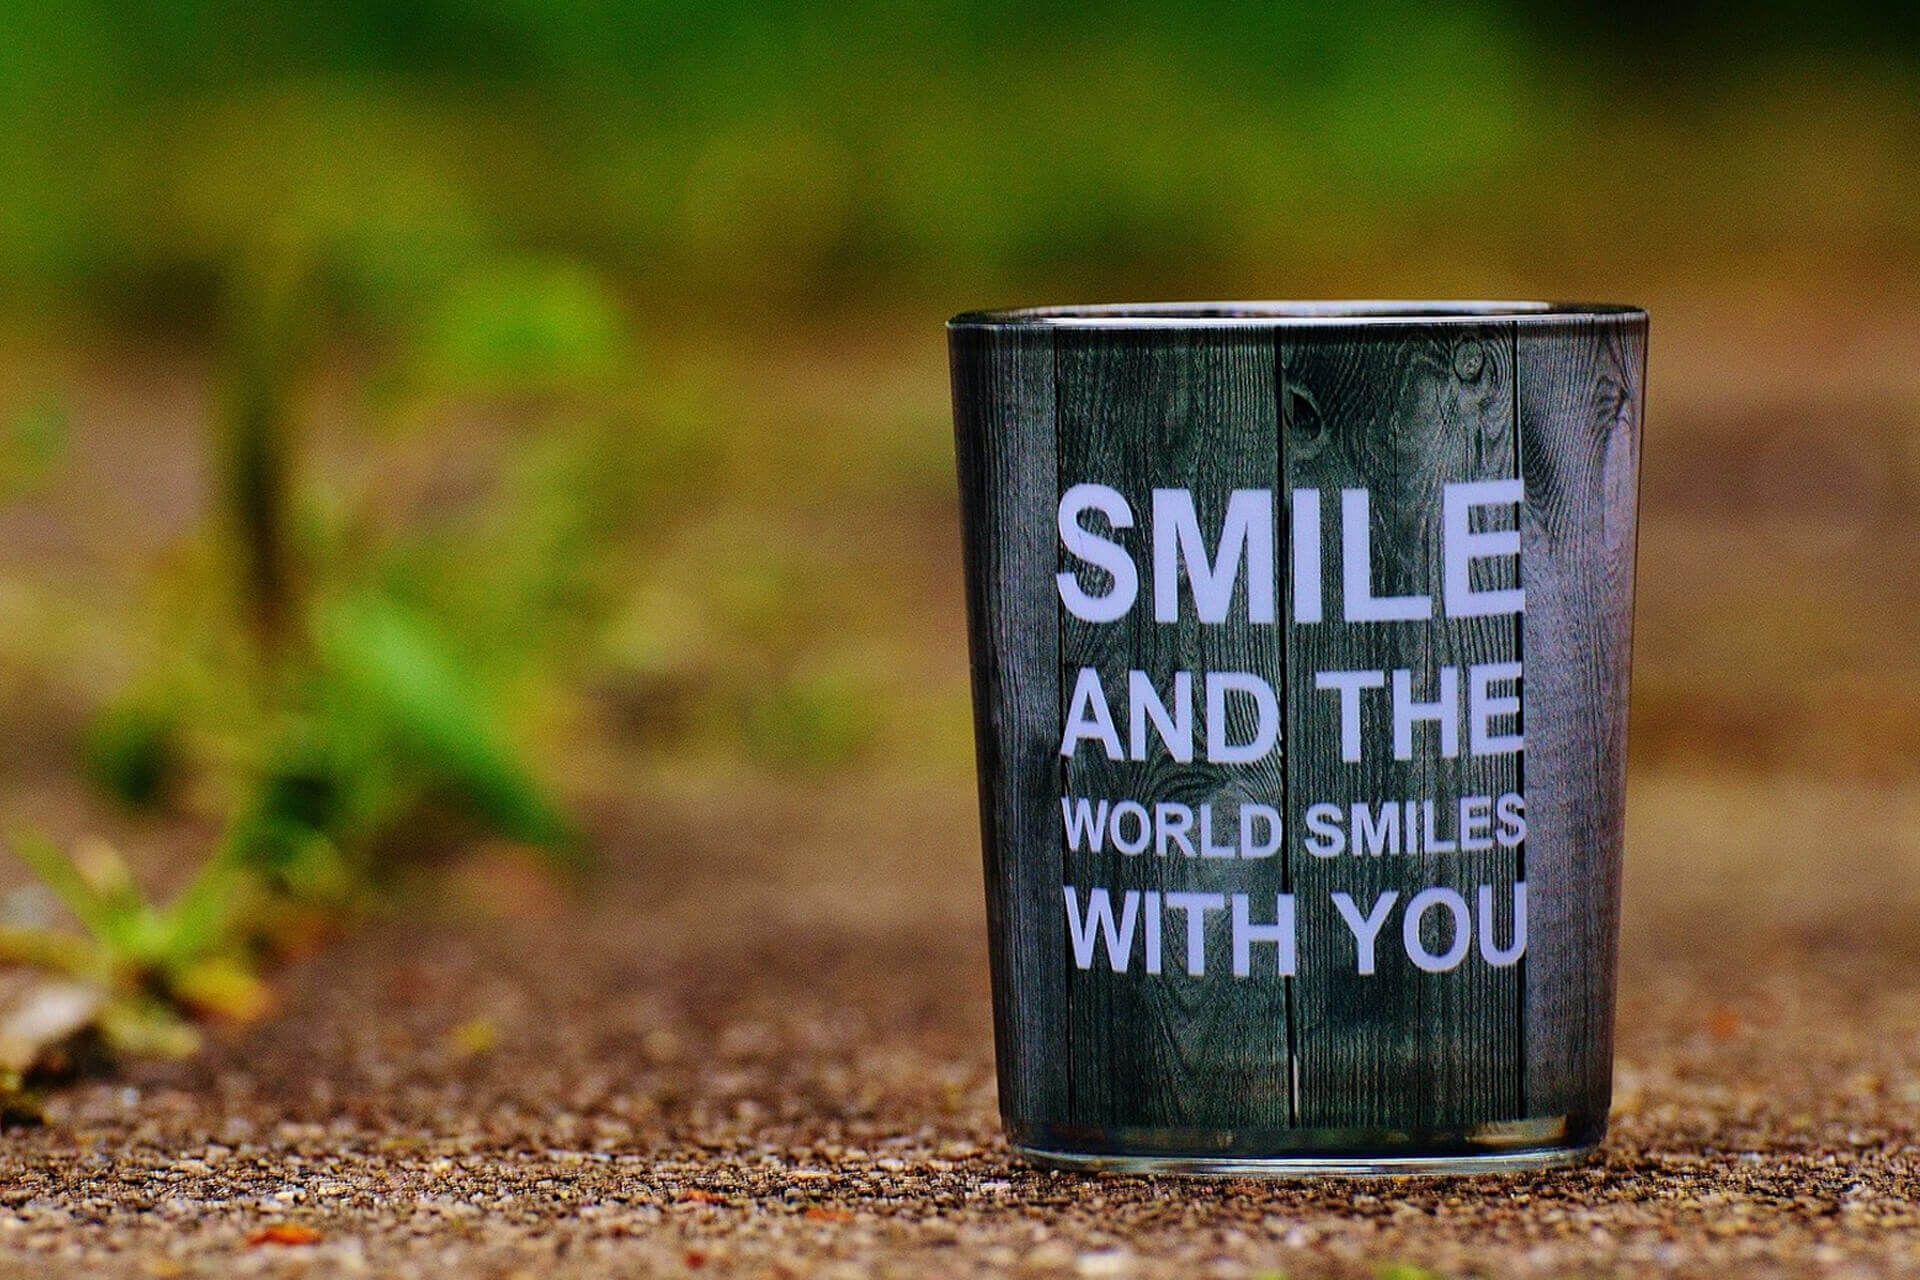 Becher vor Hintergrund mit Zitat SMILE AND THE WORLD SMILES WITH YOU